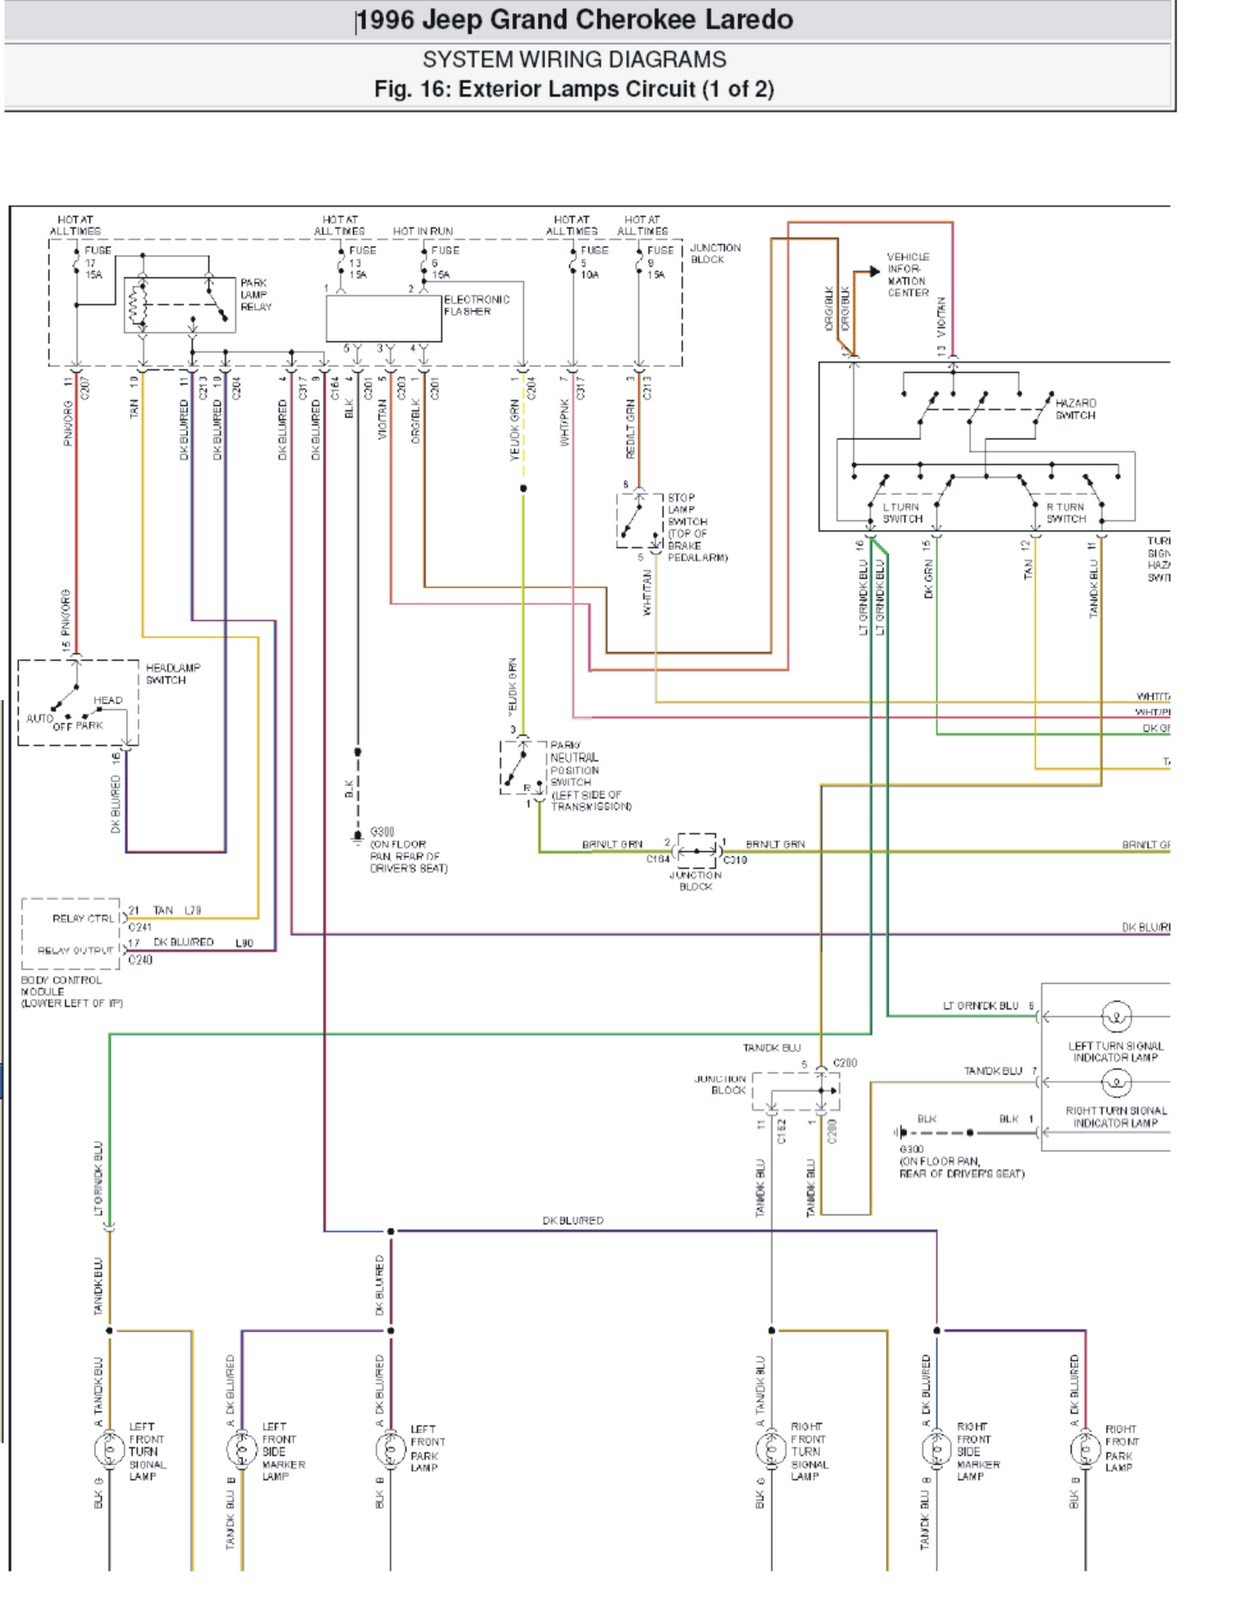 Metra Gmos Wiring Diagram - All Wiring Diagram - Metra 70-5520 Wiring Diagram